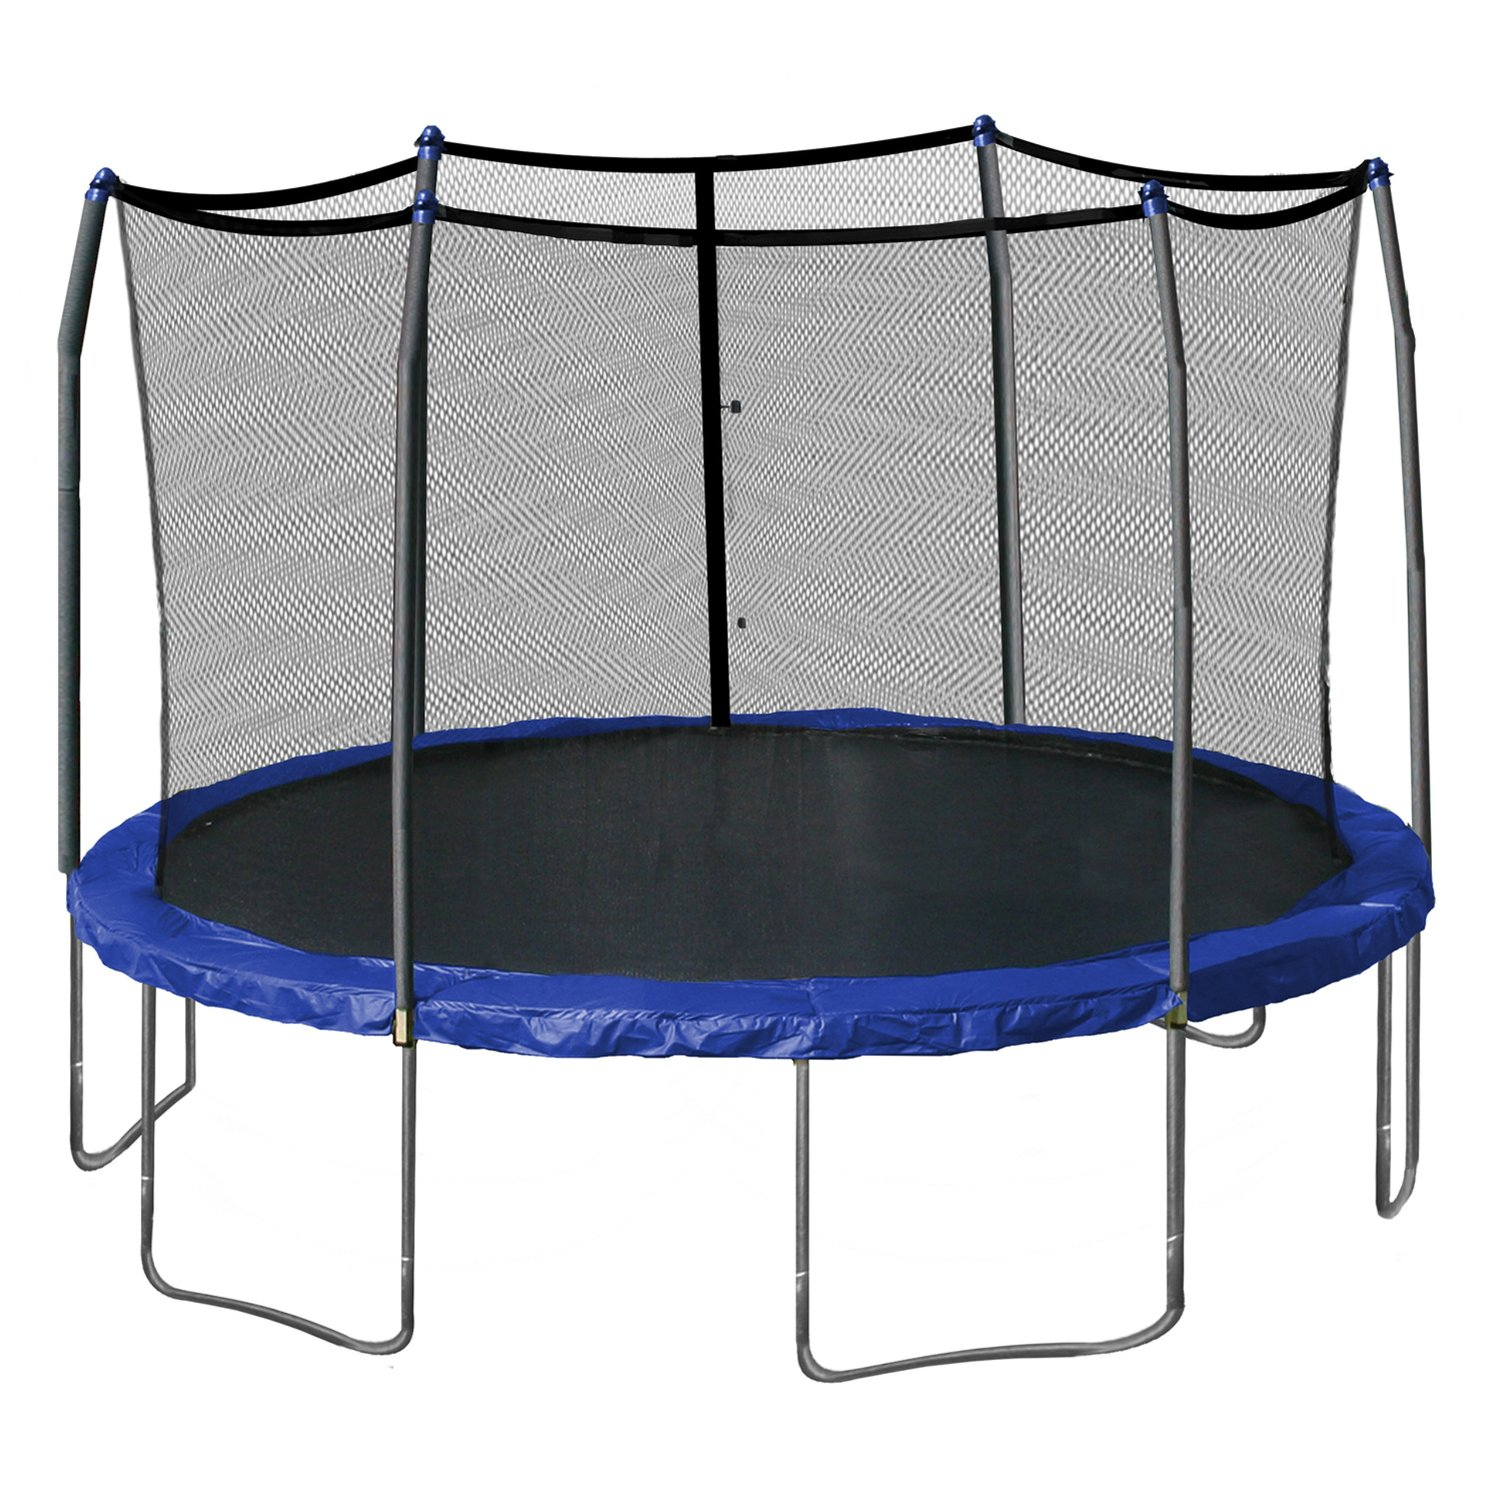 Trampoline Parts Com: 2016 Safe Trampoline Reviews Guide